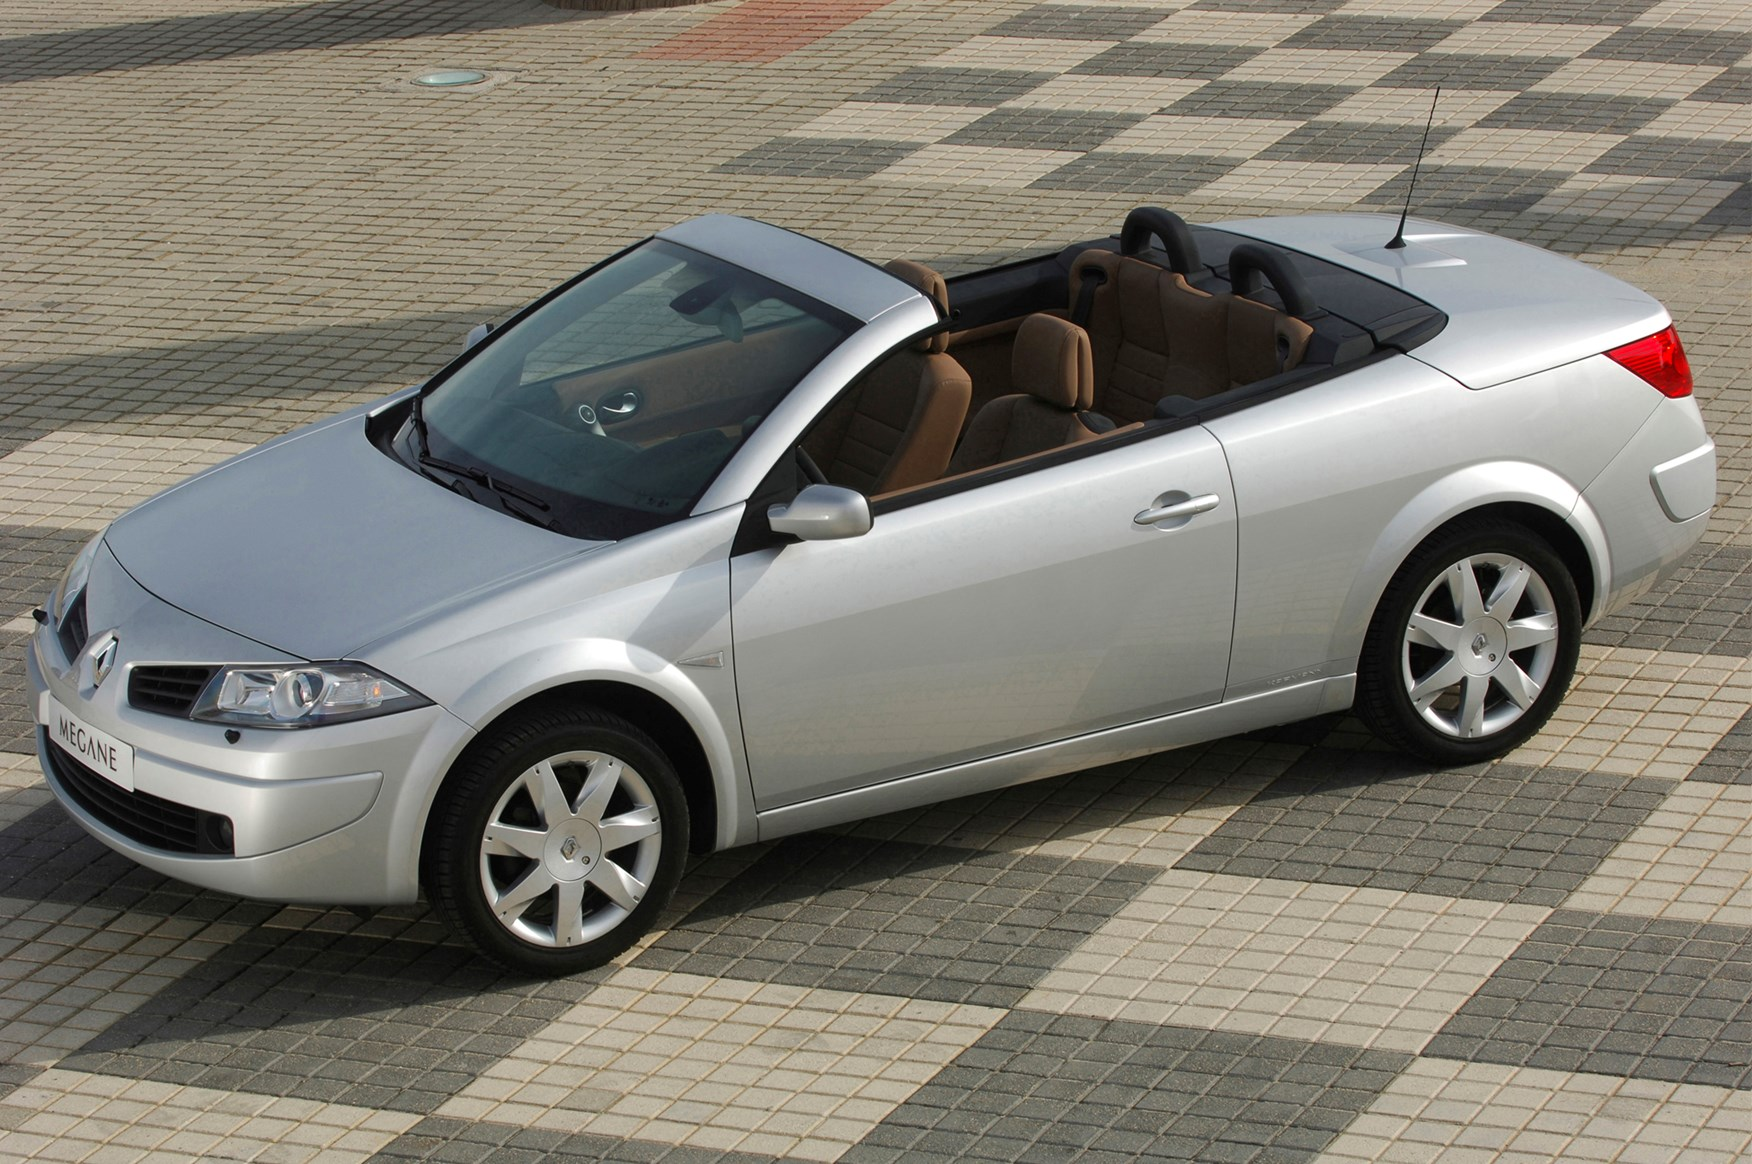 renault megane cabriolet review 2006 2009 parkers. Black Bedroom Furniture Sets. Home Design Ideas